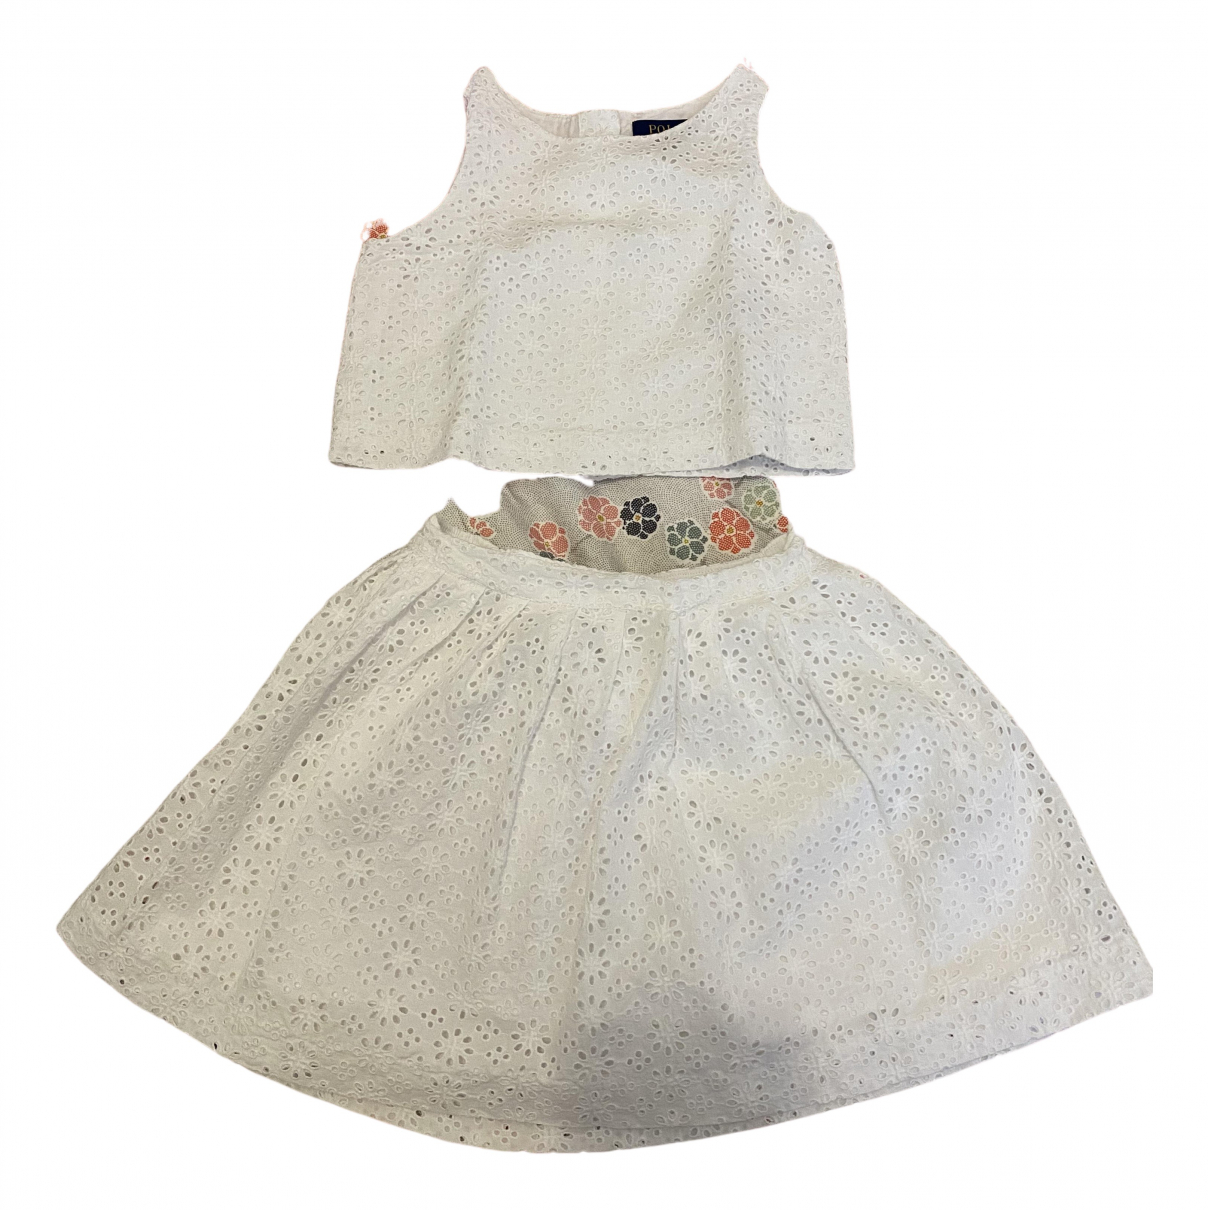 Polo Ralph Lauren N White Cotton dress for Kids 4 years - up to 102cm FR